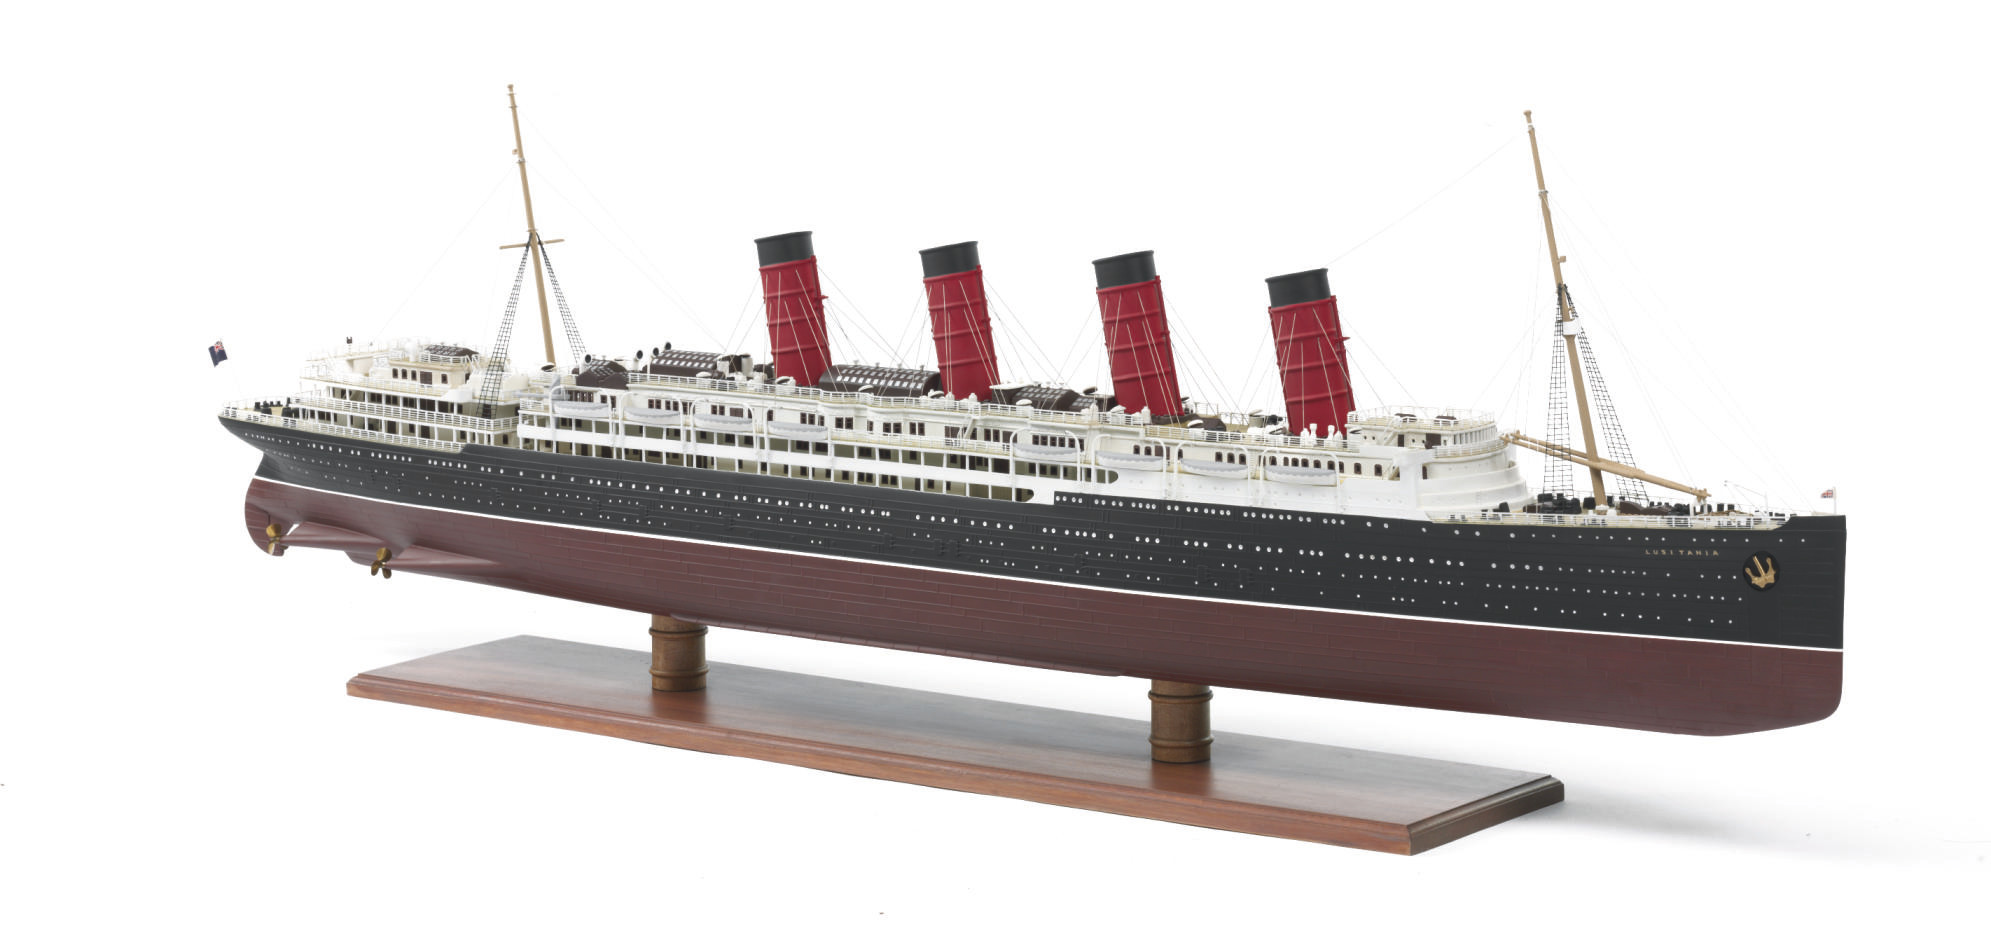 A Large Model of the R.M.S. Lu